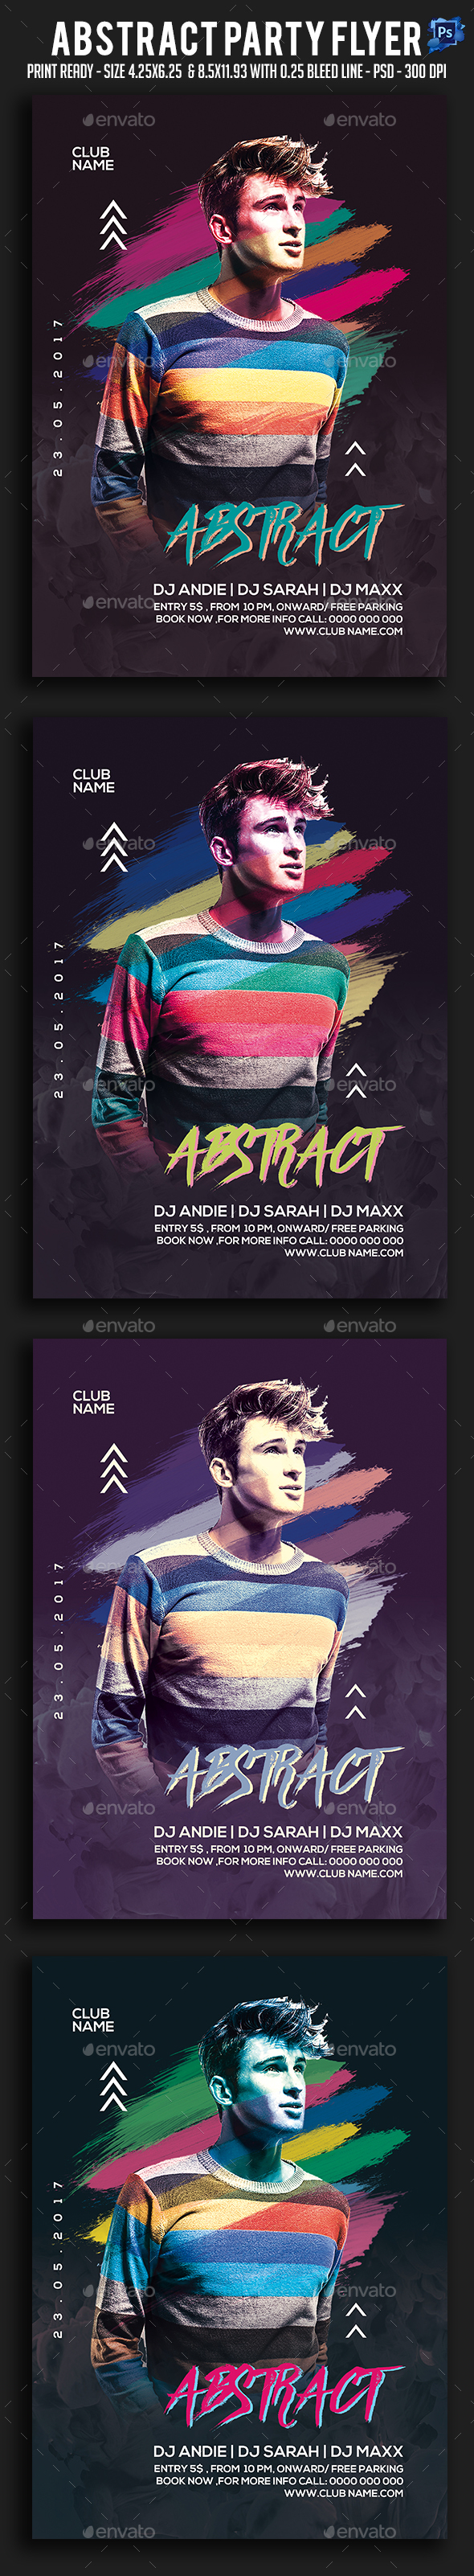 Abstract Party Flyer - Clubs & Parties Events